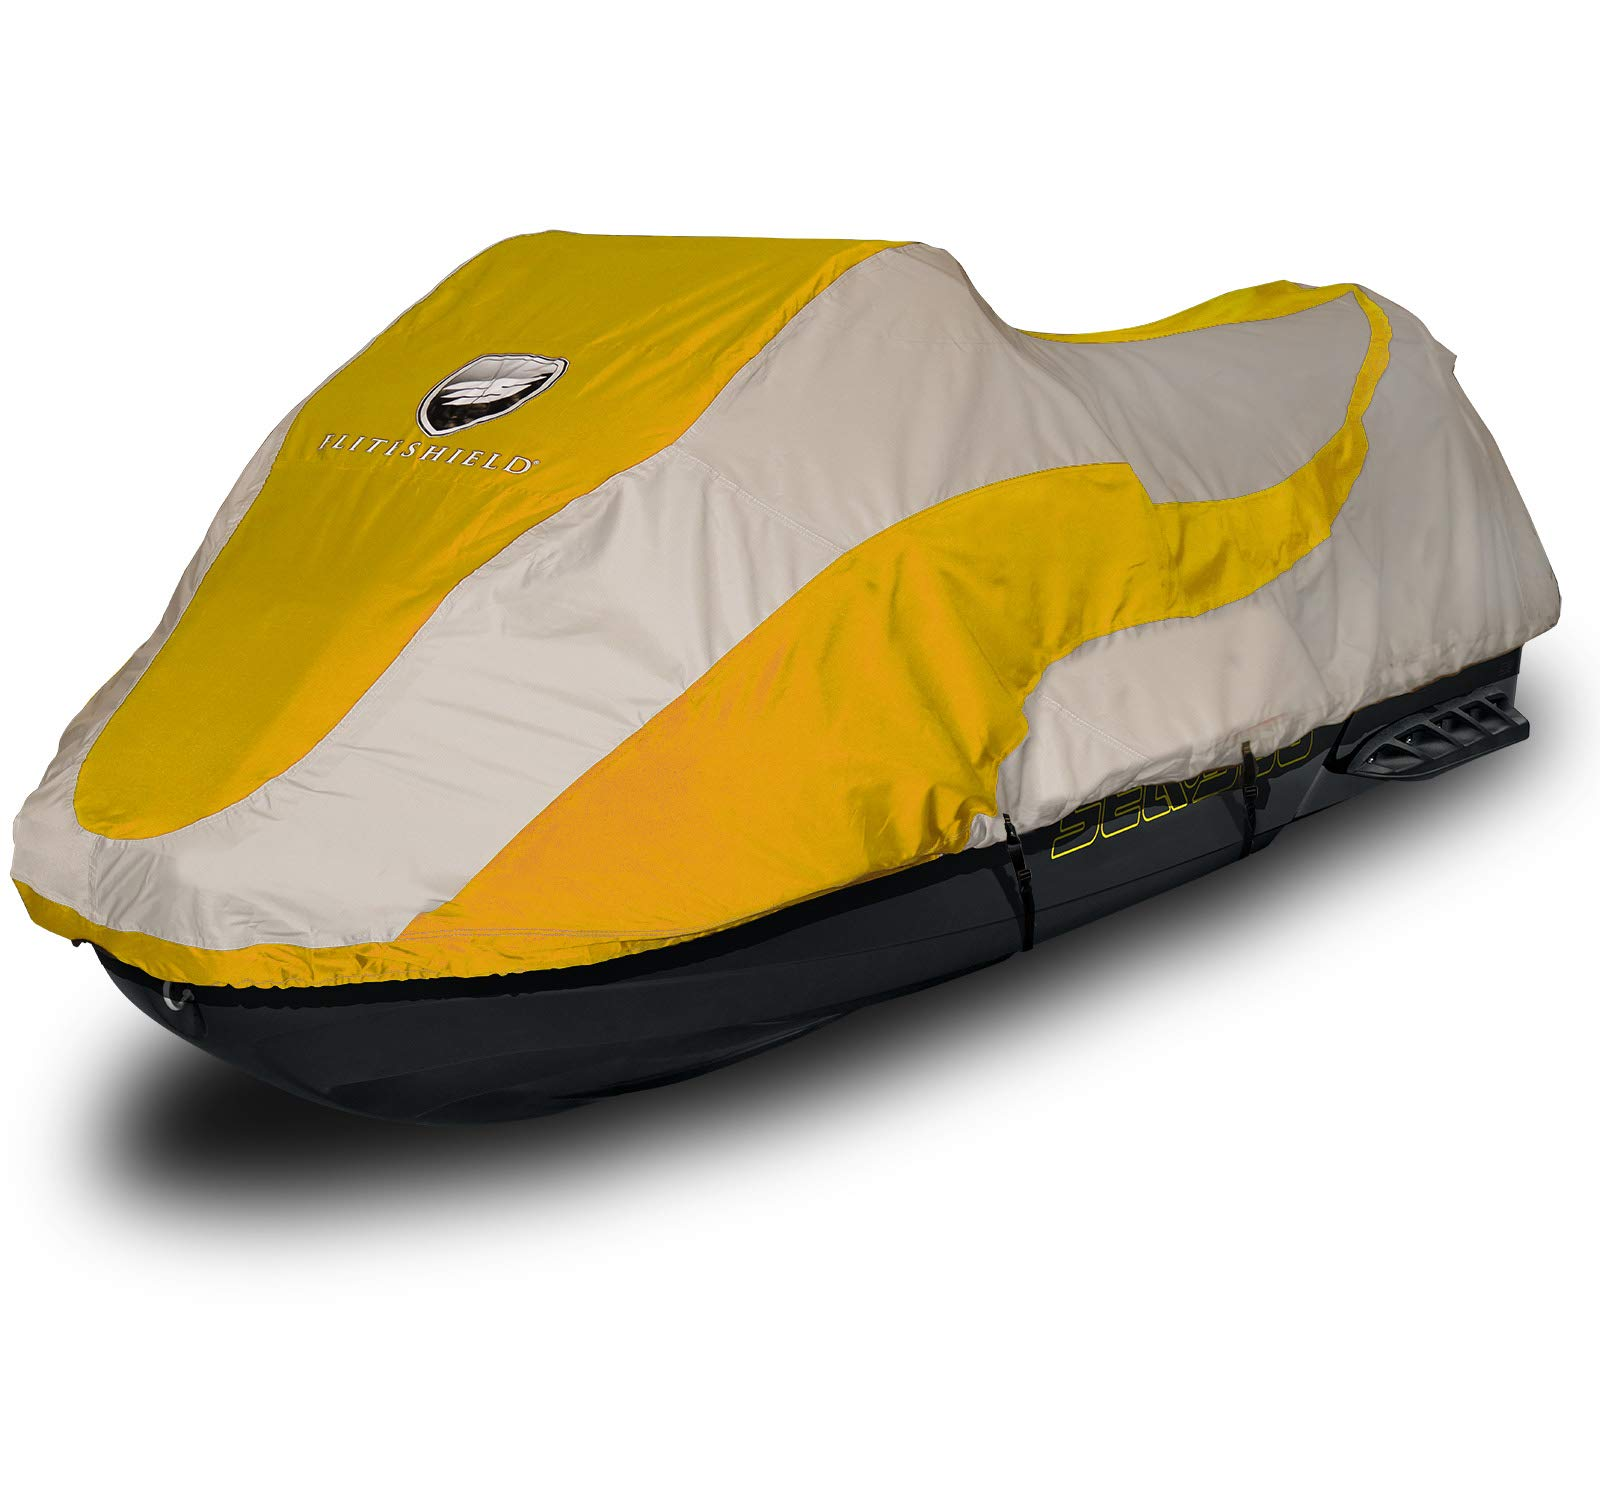 EliteShield Trailerable PWC Watercraft Jet Ski Cover Jet Ski Cover Fits from 136''-145''(3 Seater) Two Tone Yellow/Grey